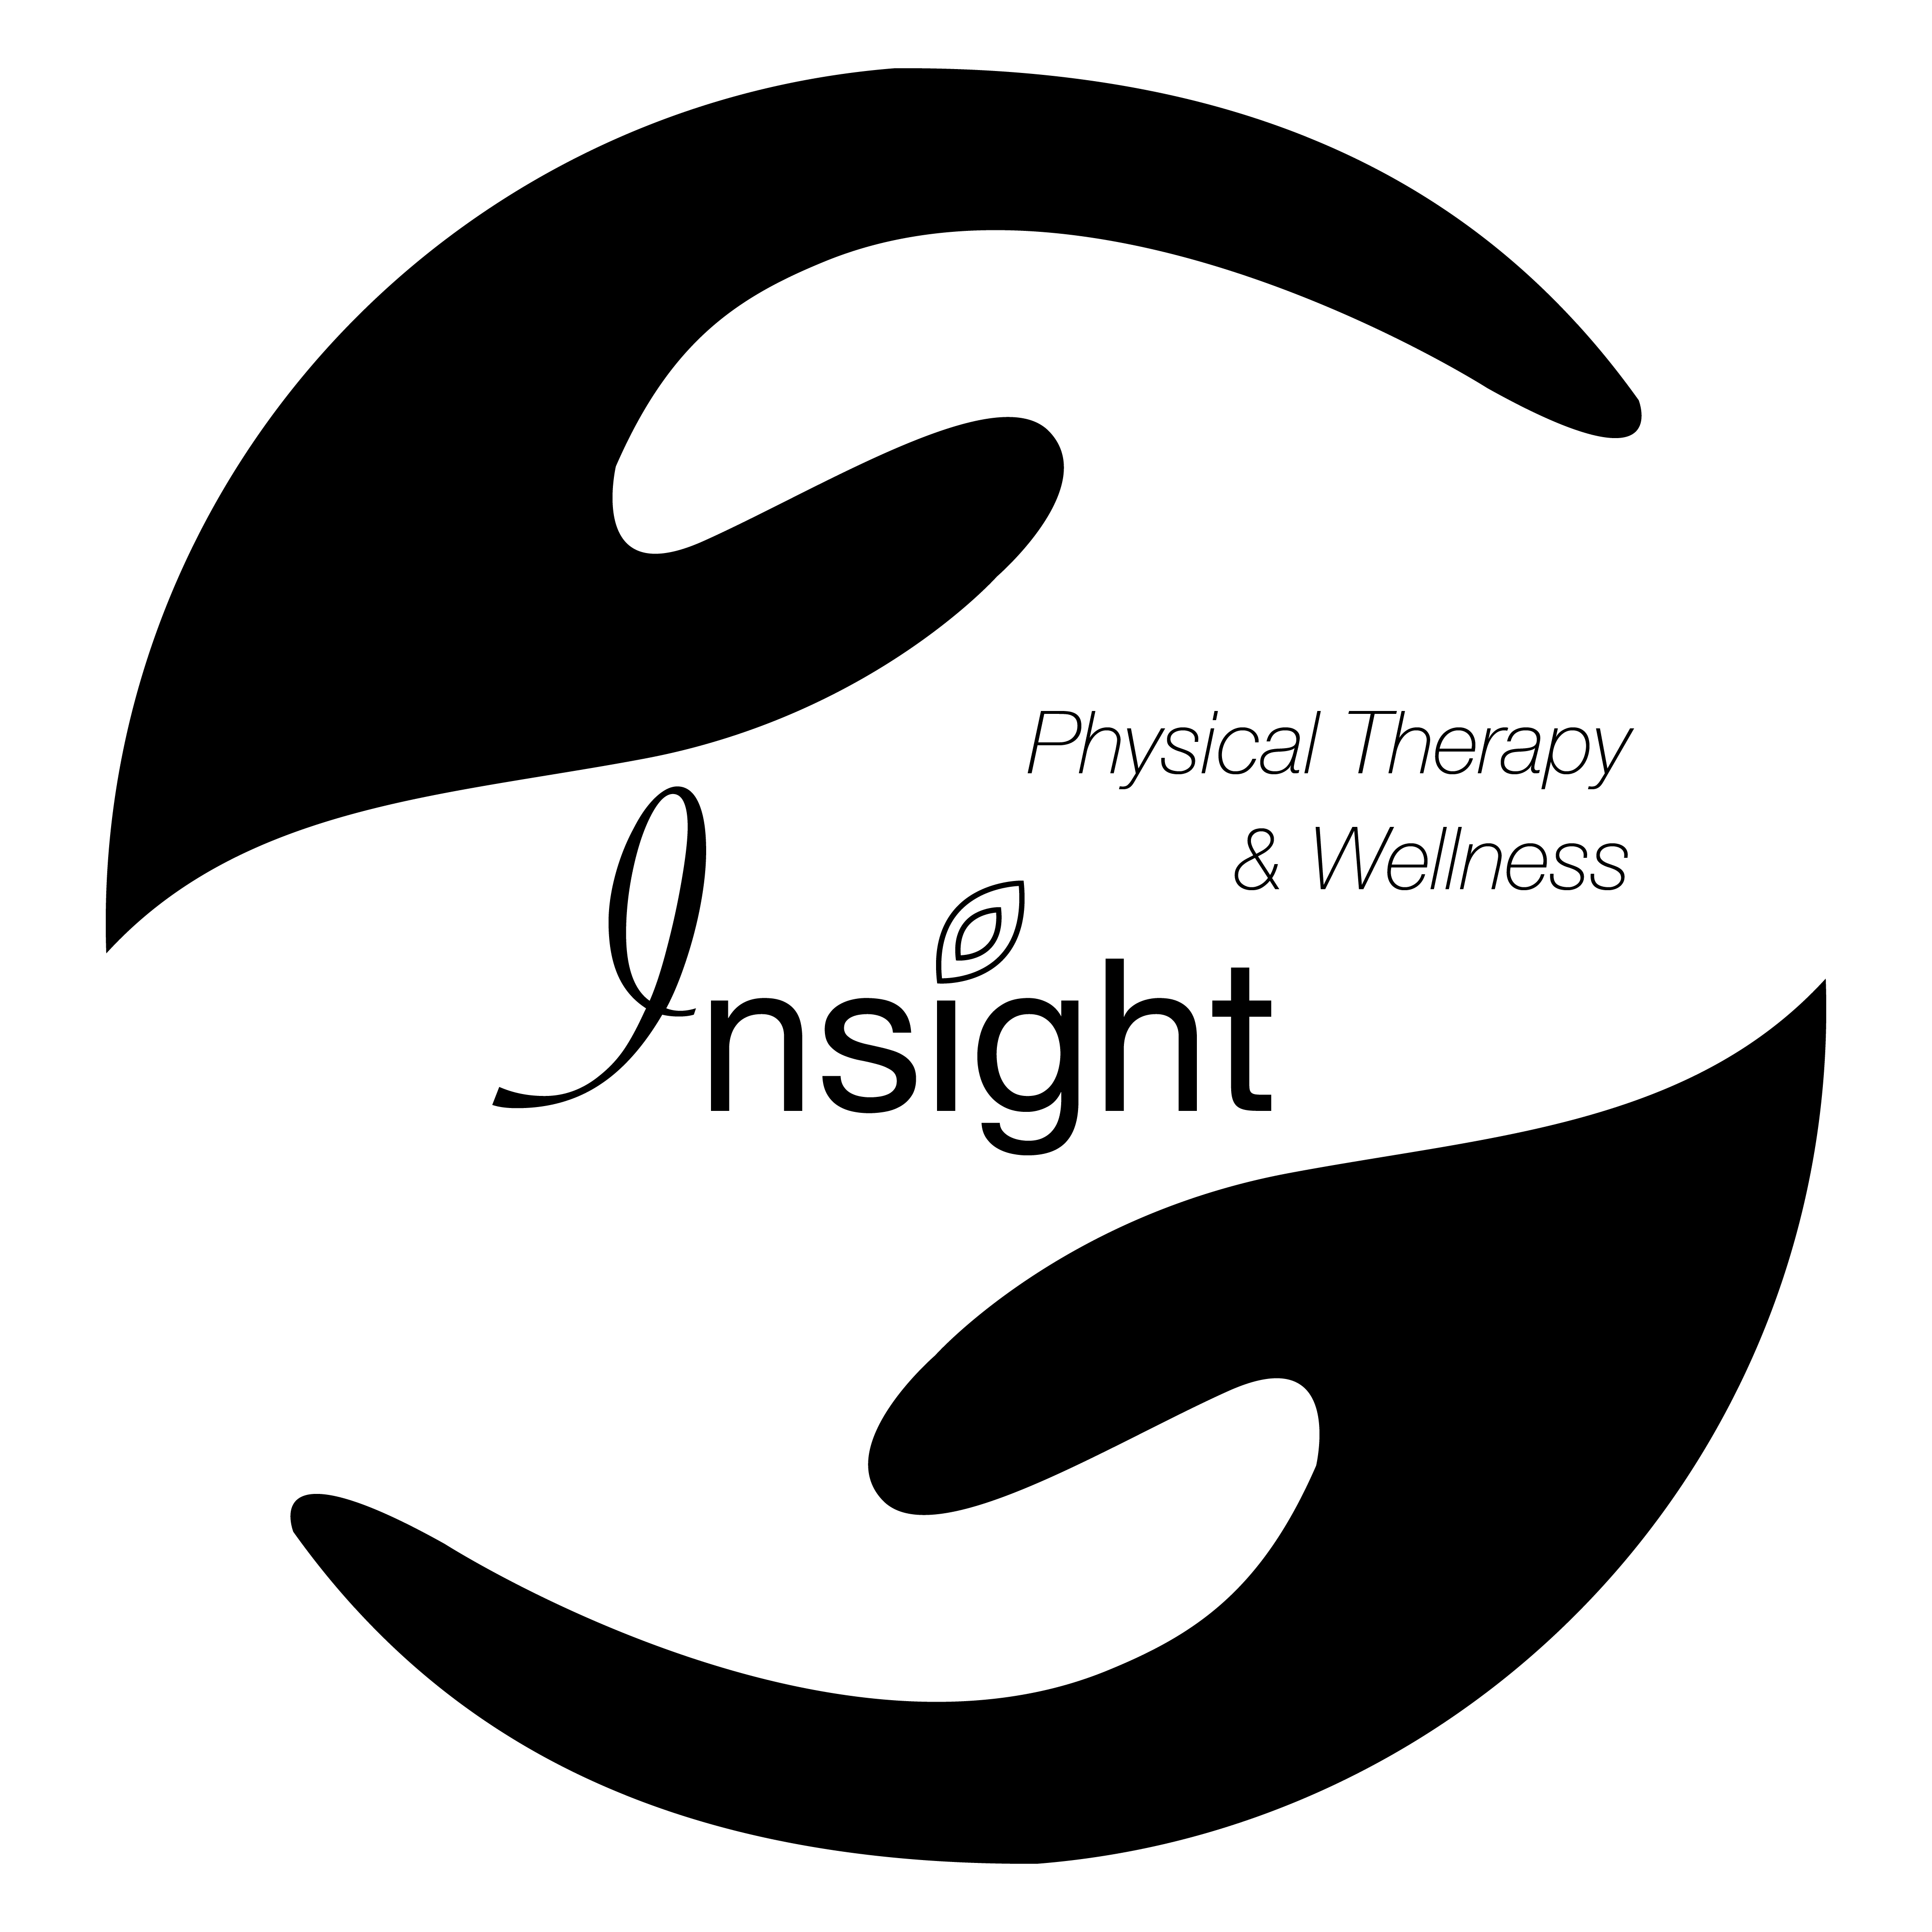 Julie Wallace, Insight Physical Therapy and Wellness